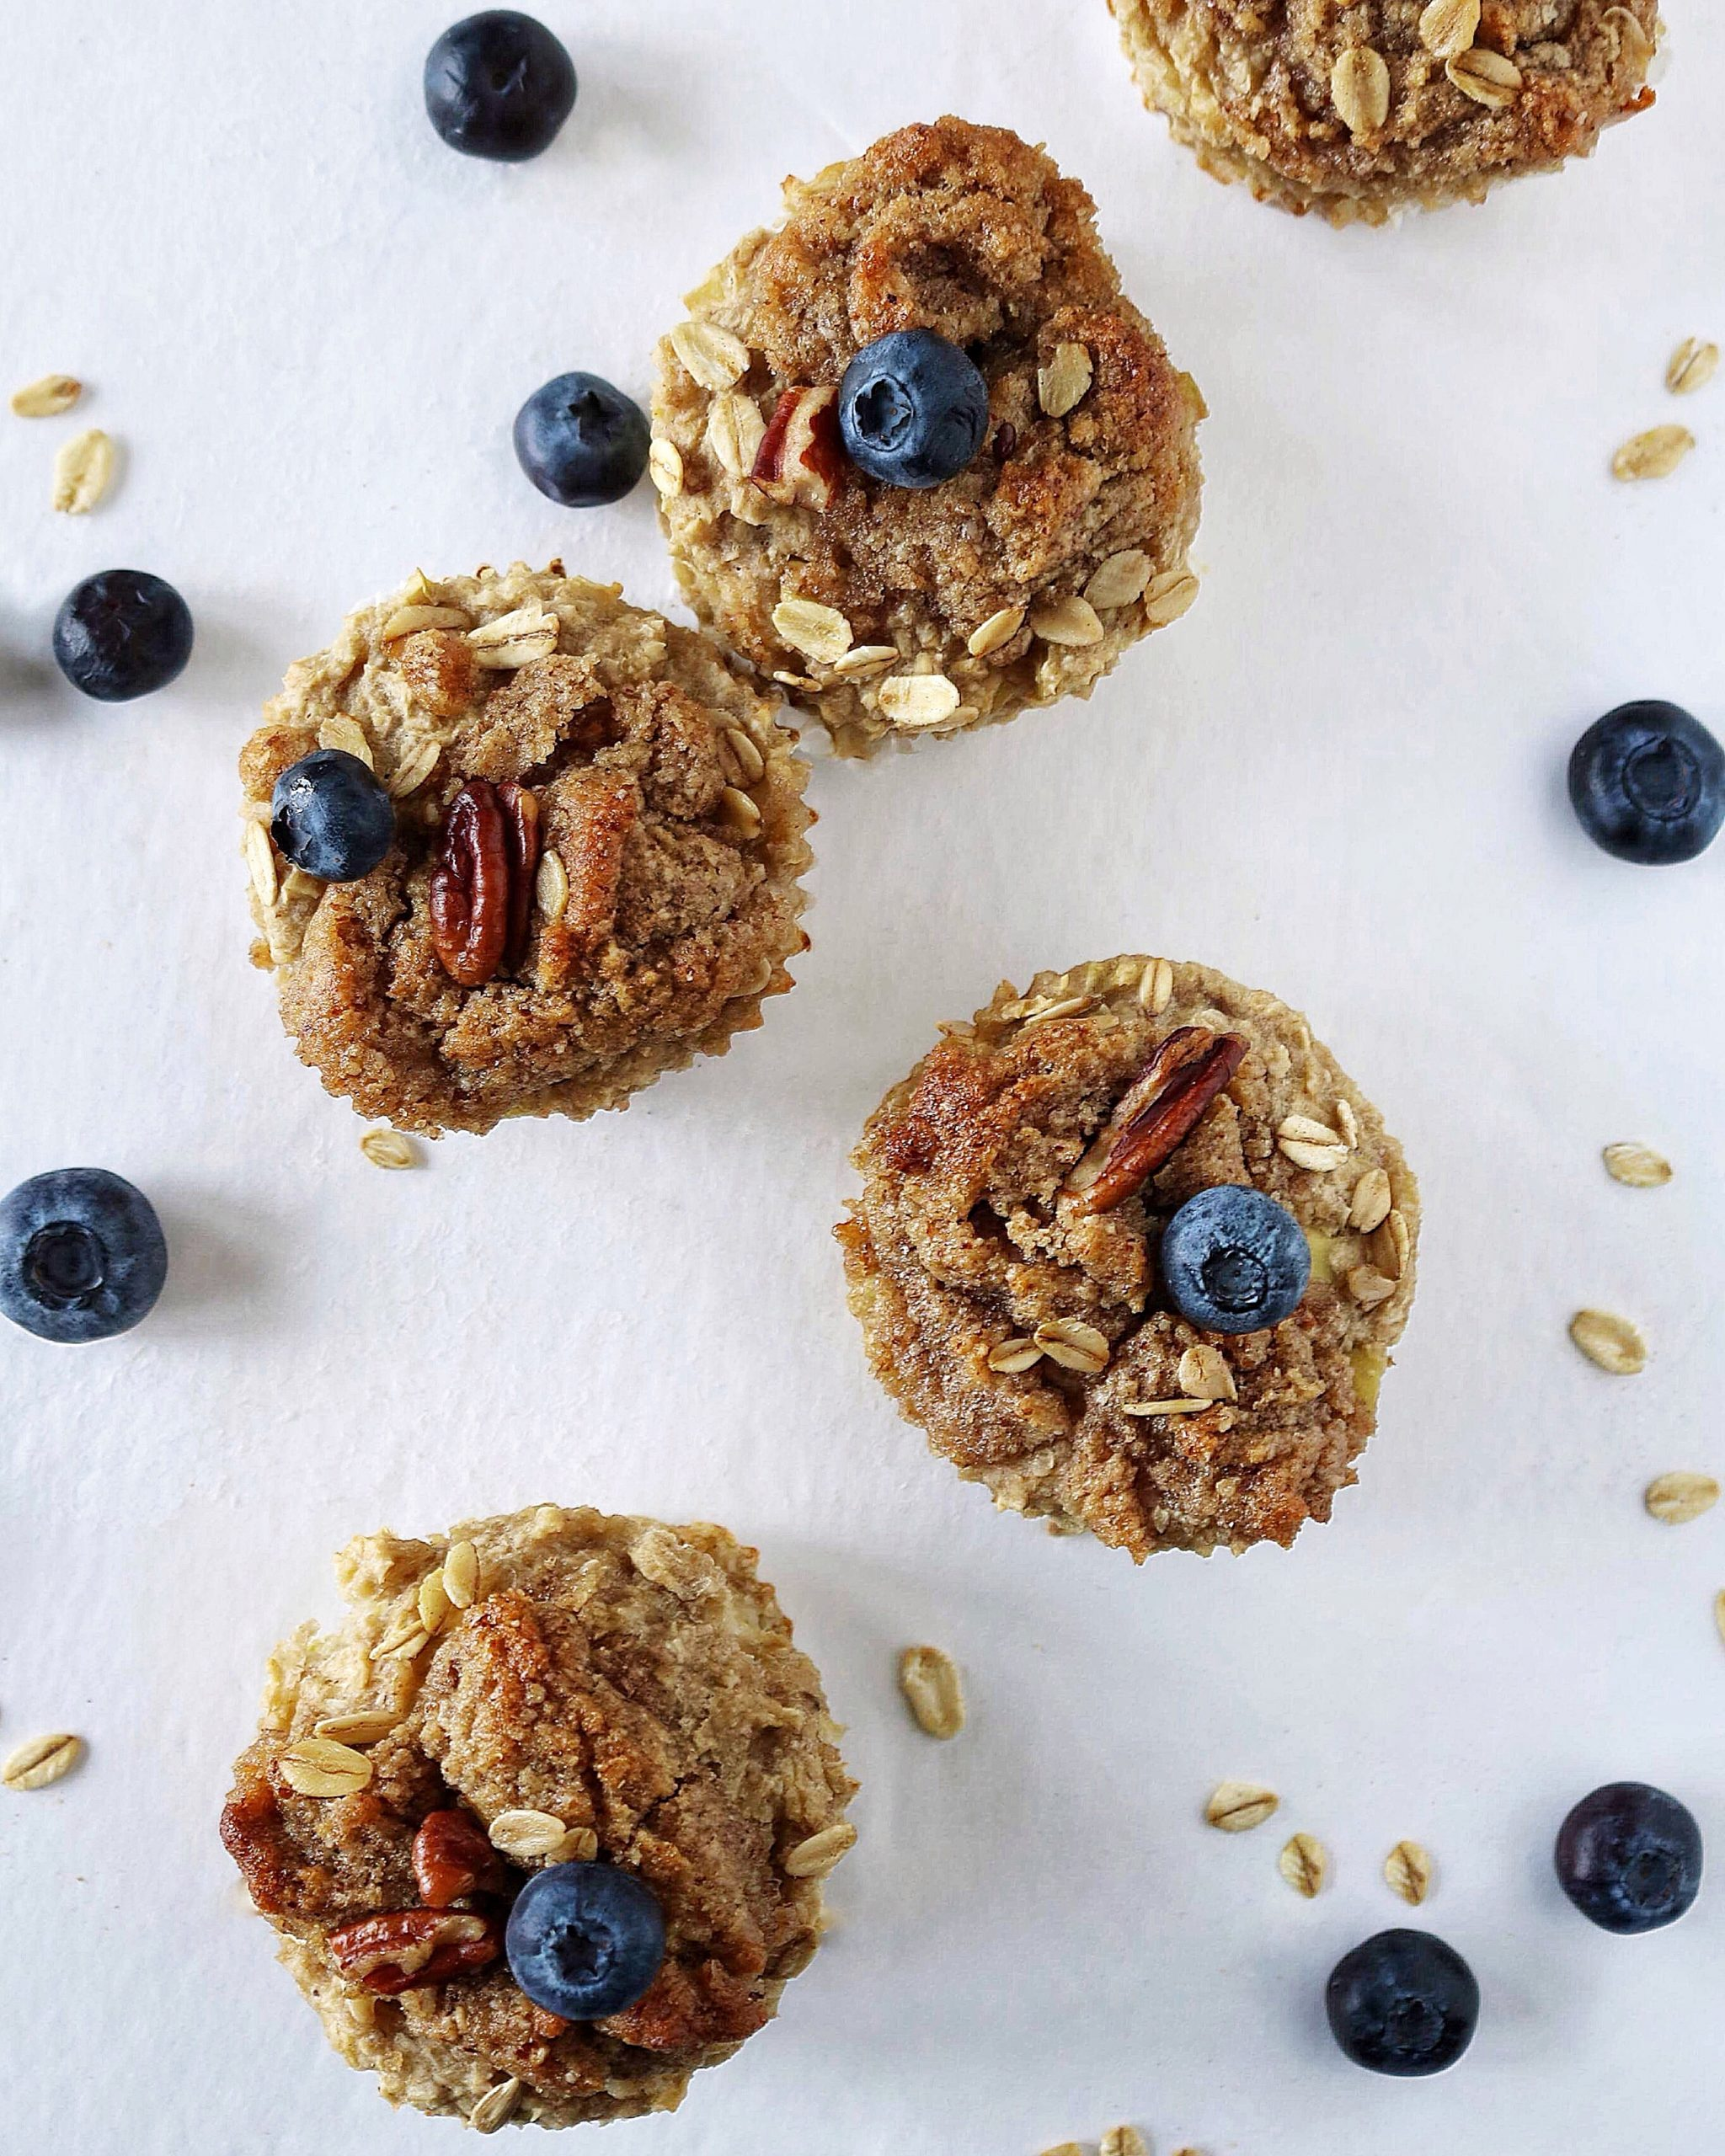 Blueberry muffins with blueberries and granola on top of the muffin